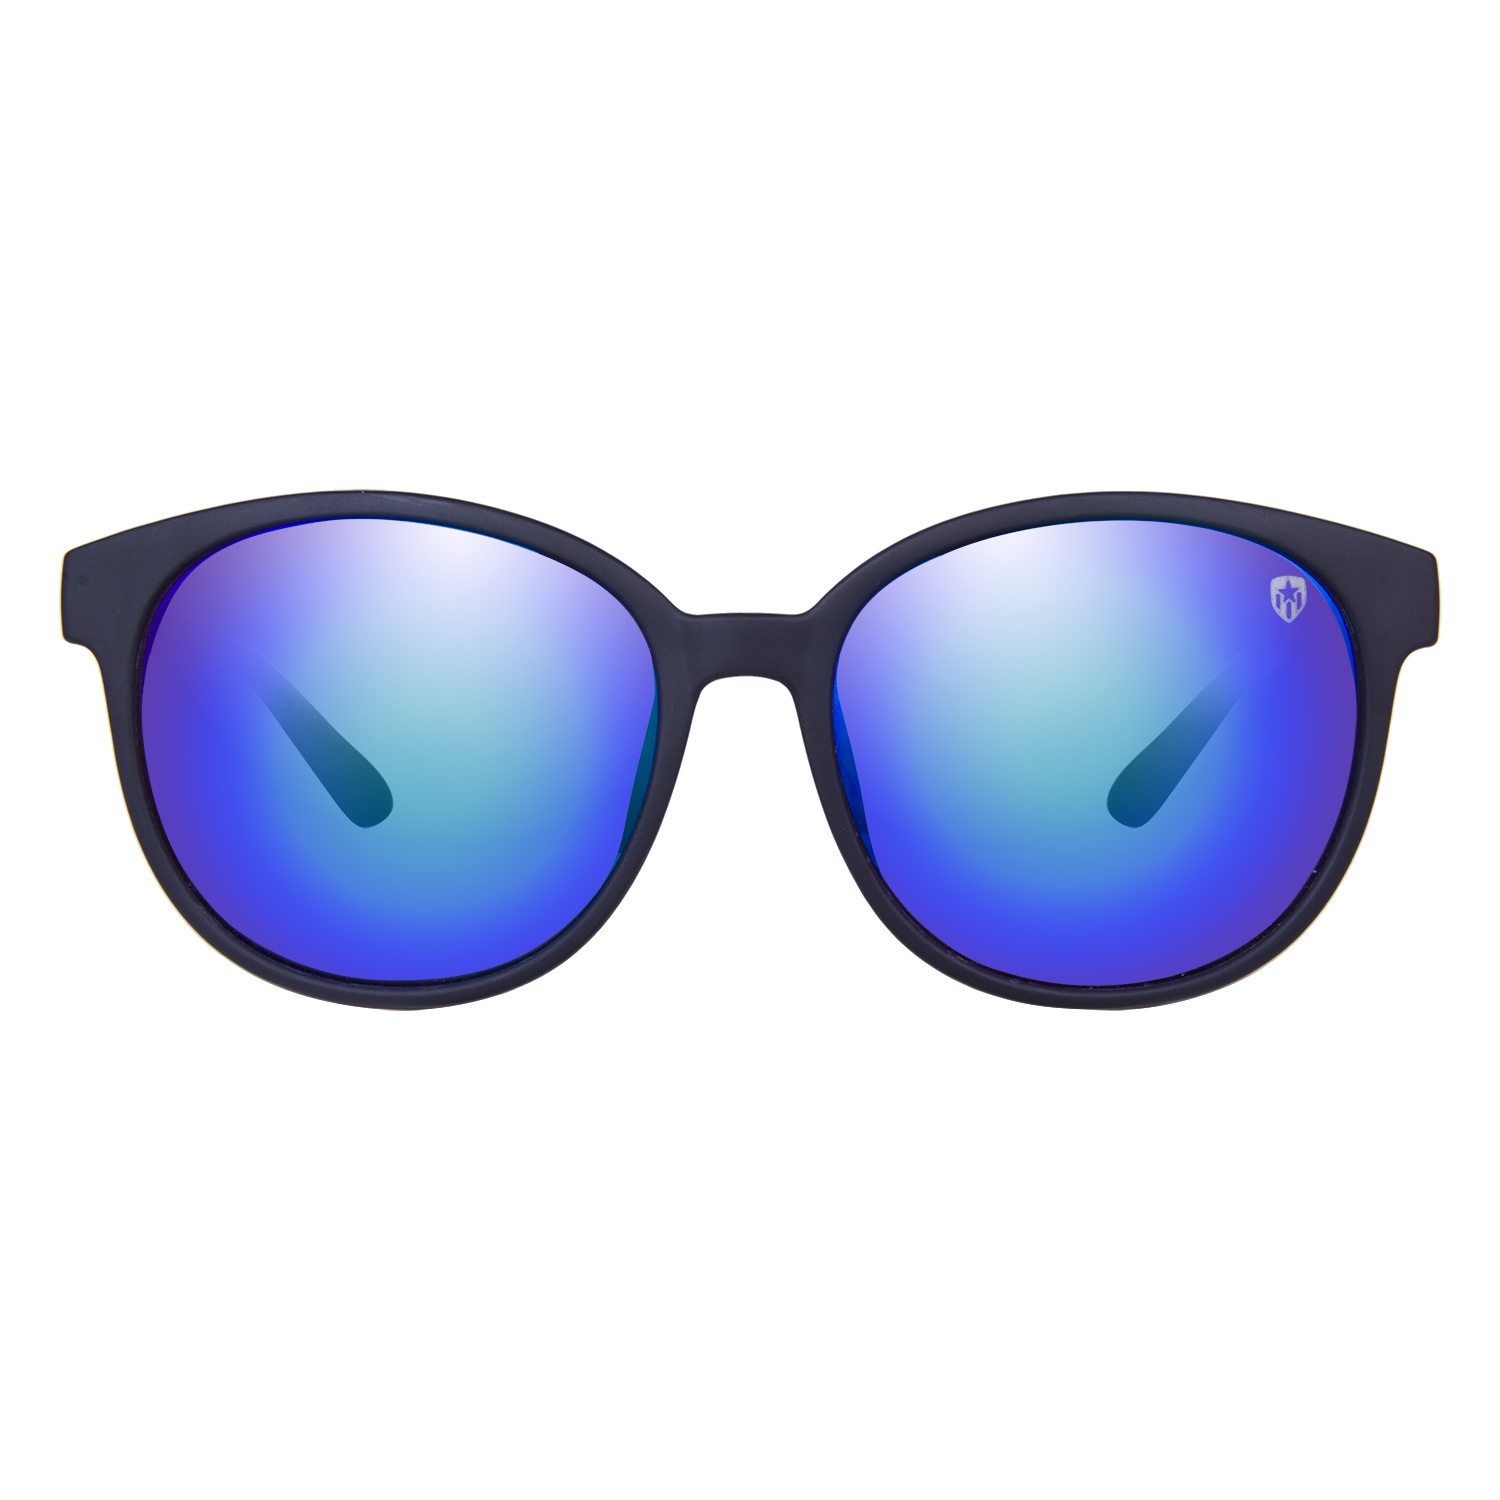 d5f347353ed7 Buy Mens Blue Vienna Wayfarer Sunglasses Online At Best Price India